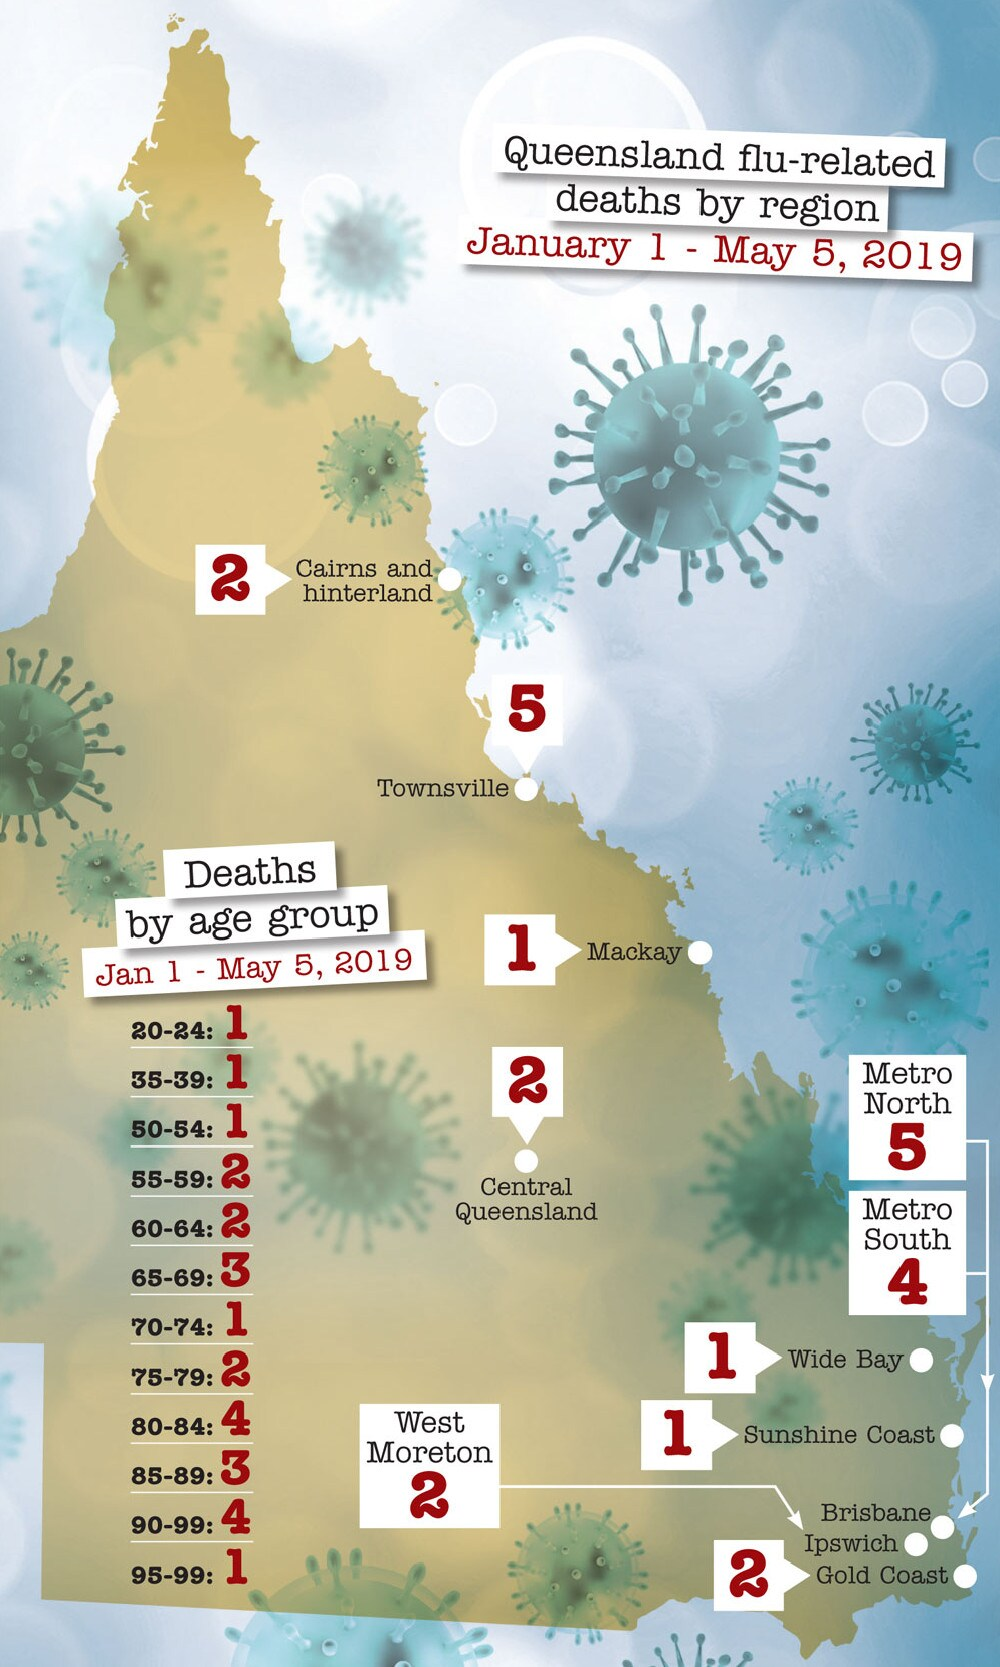 A map showing the locations of Queensland's flu deaths in 2018.